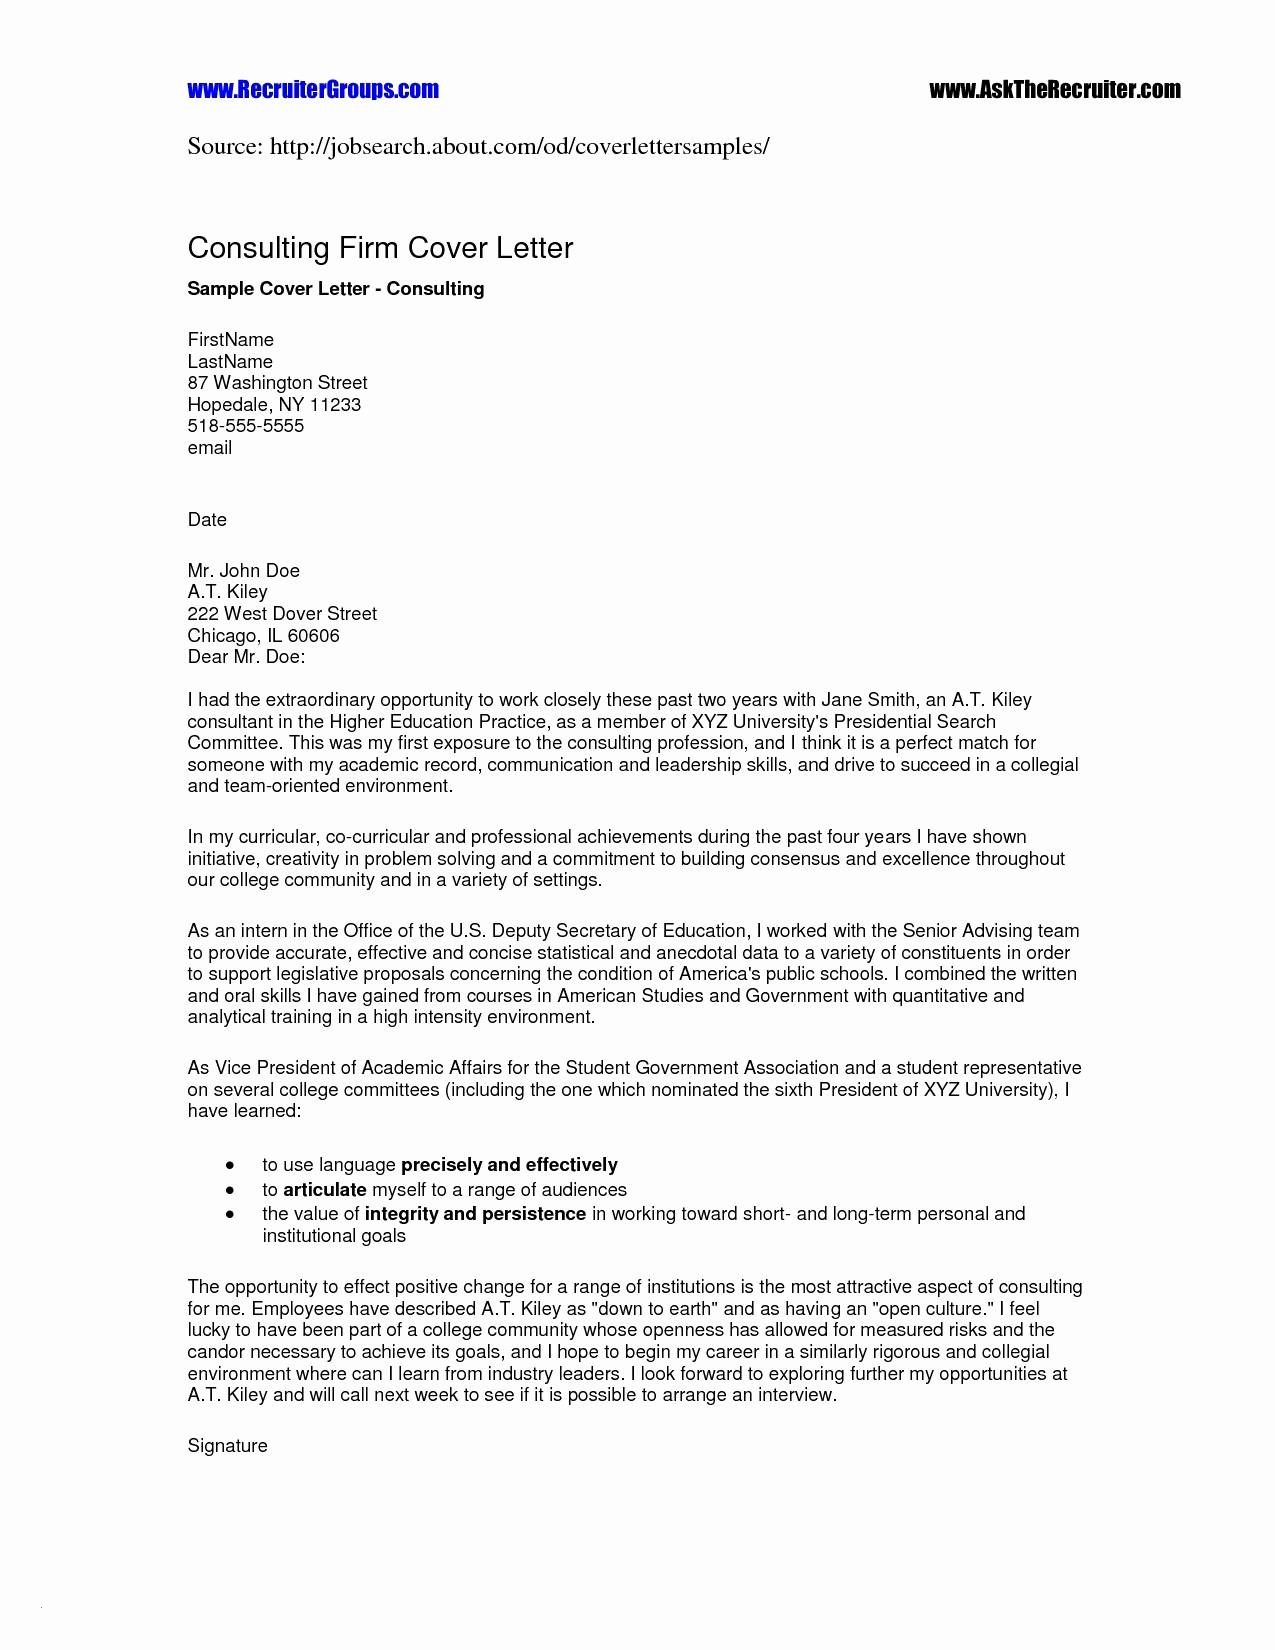 government job cover letter template Collection-Resume format for Government Job Best Sample Resume In Applying A Job Best Sample Cover 2-l